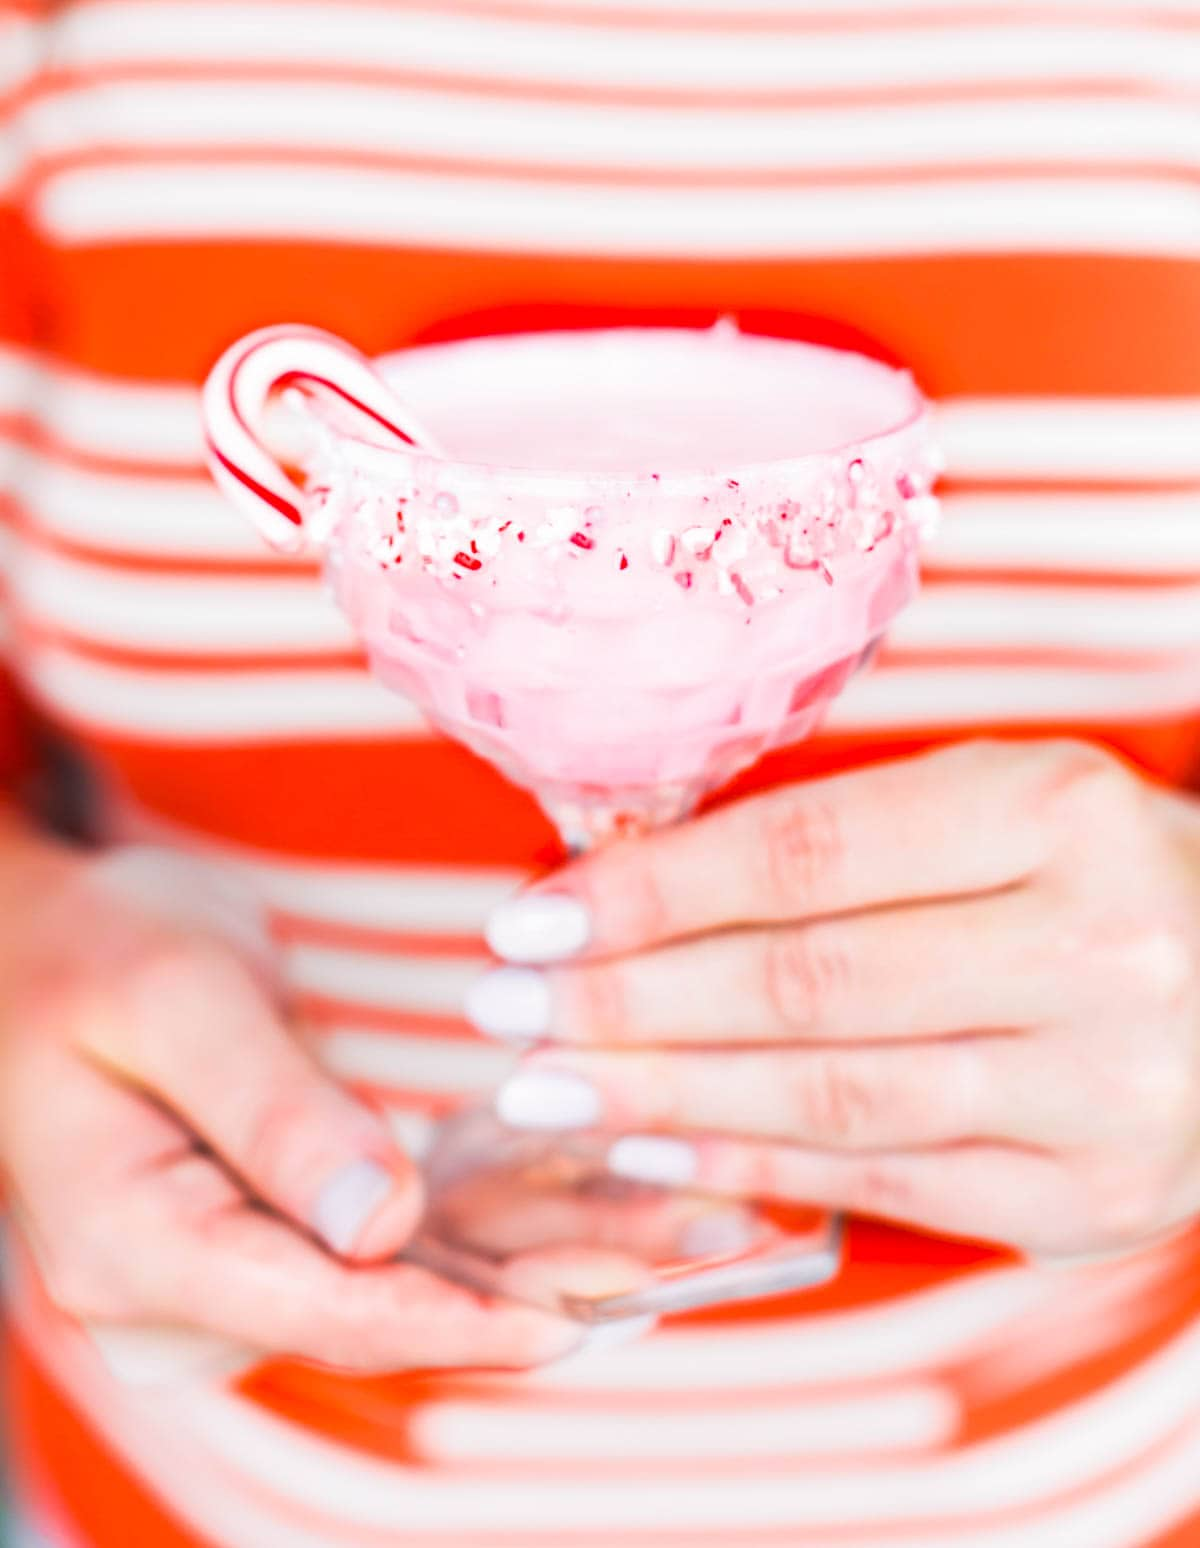 white-chocolate-candy-cane-cocktail-ashley-conway-9